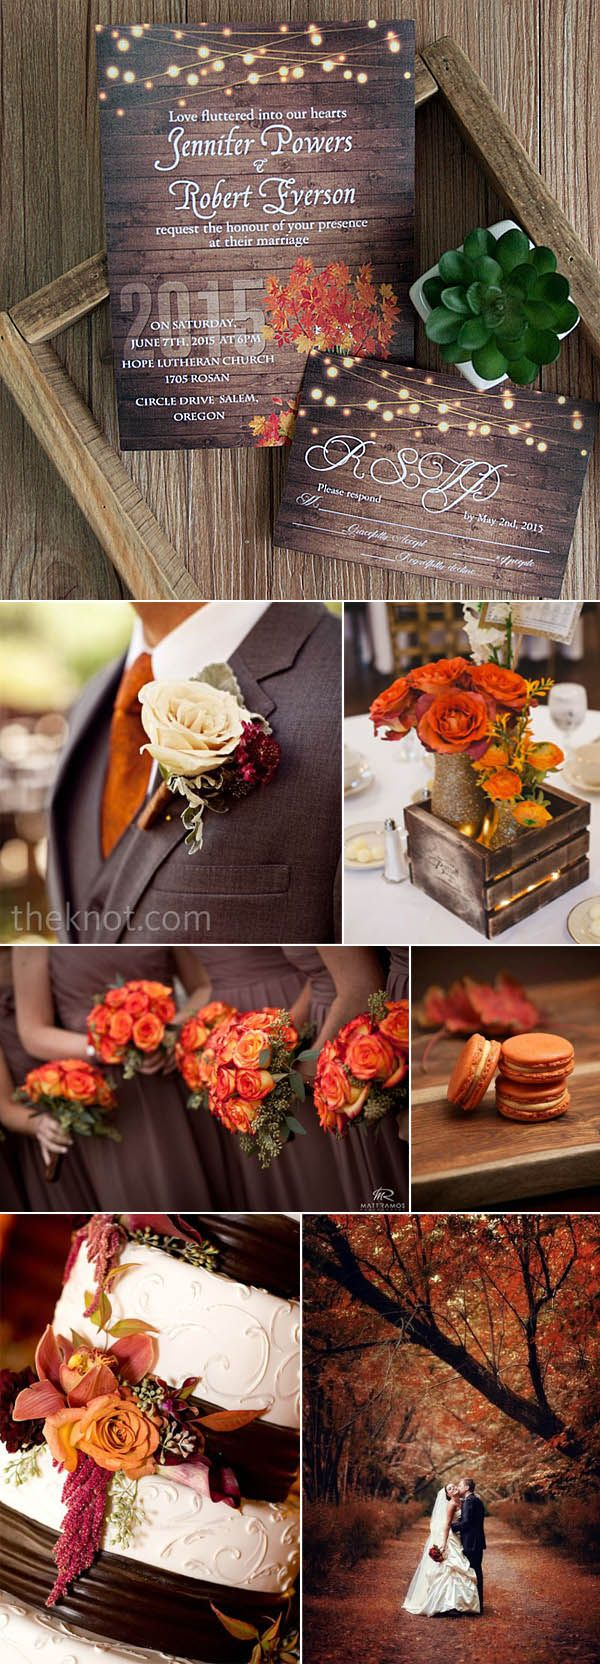 Viking wedding decorations october 2018 Ten Beautiful Fall Wedding Invitations To Match Your Wedding Colors